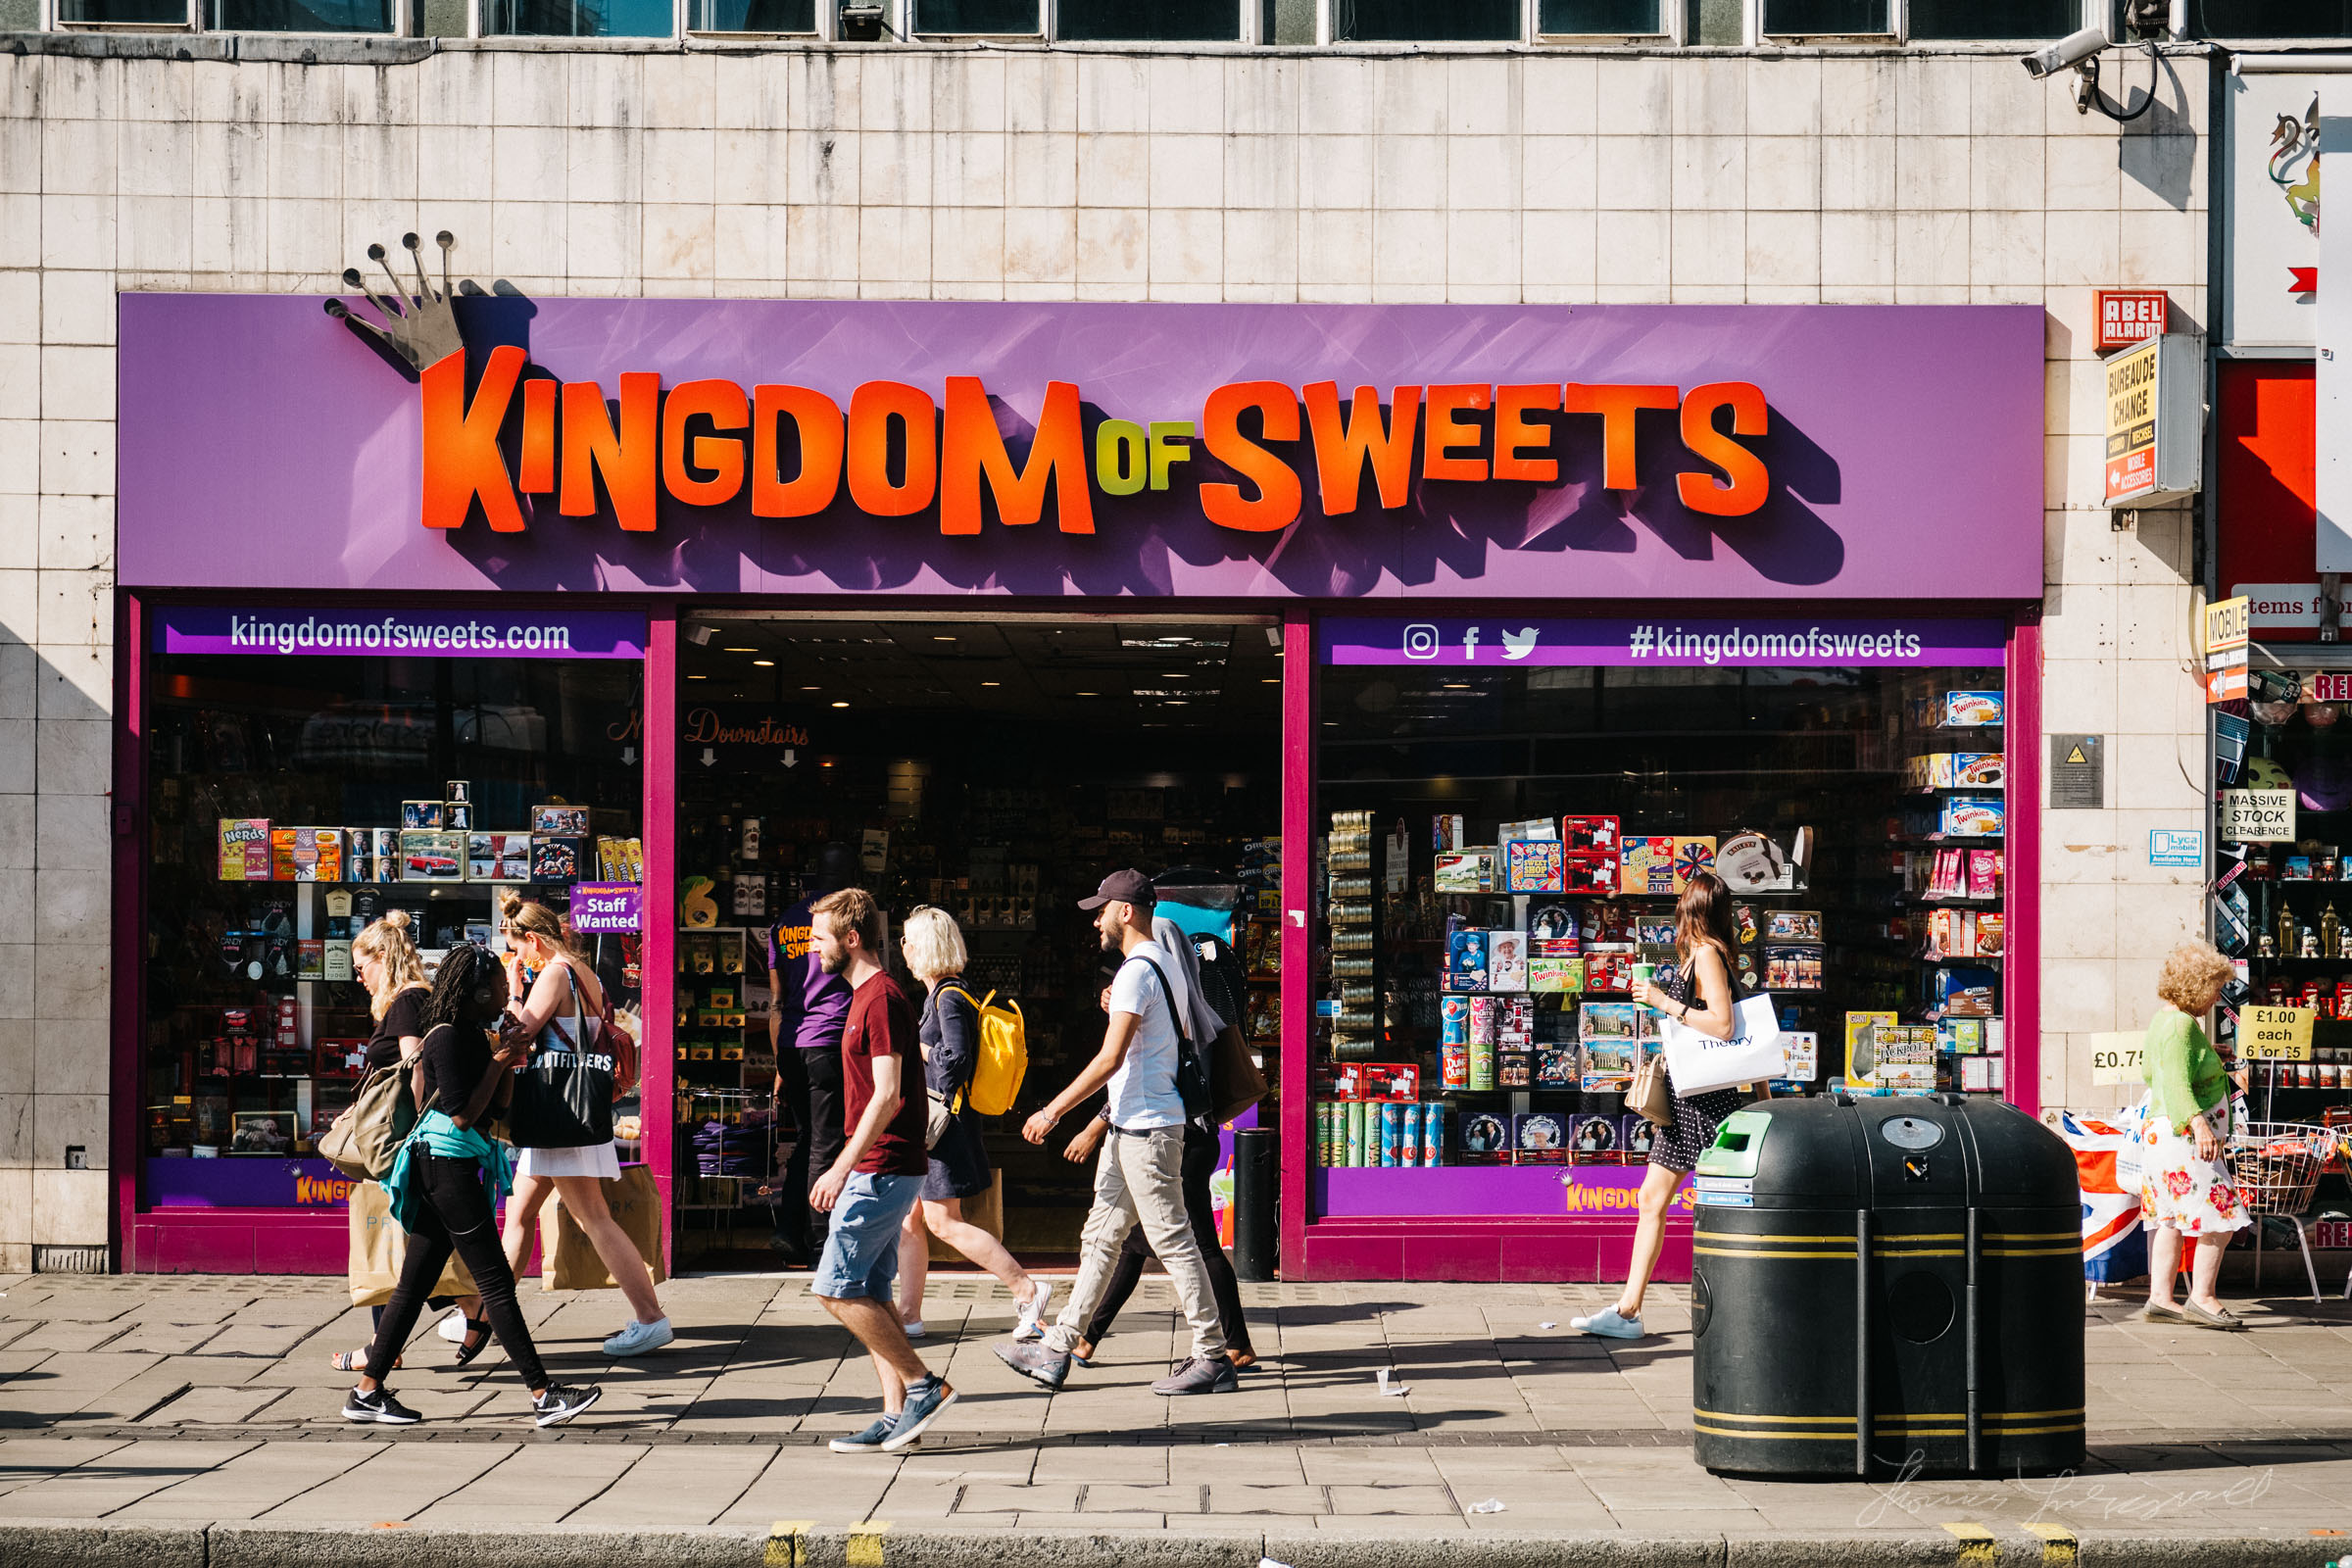 Kingdom of Sweets store in London